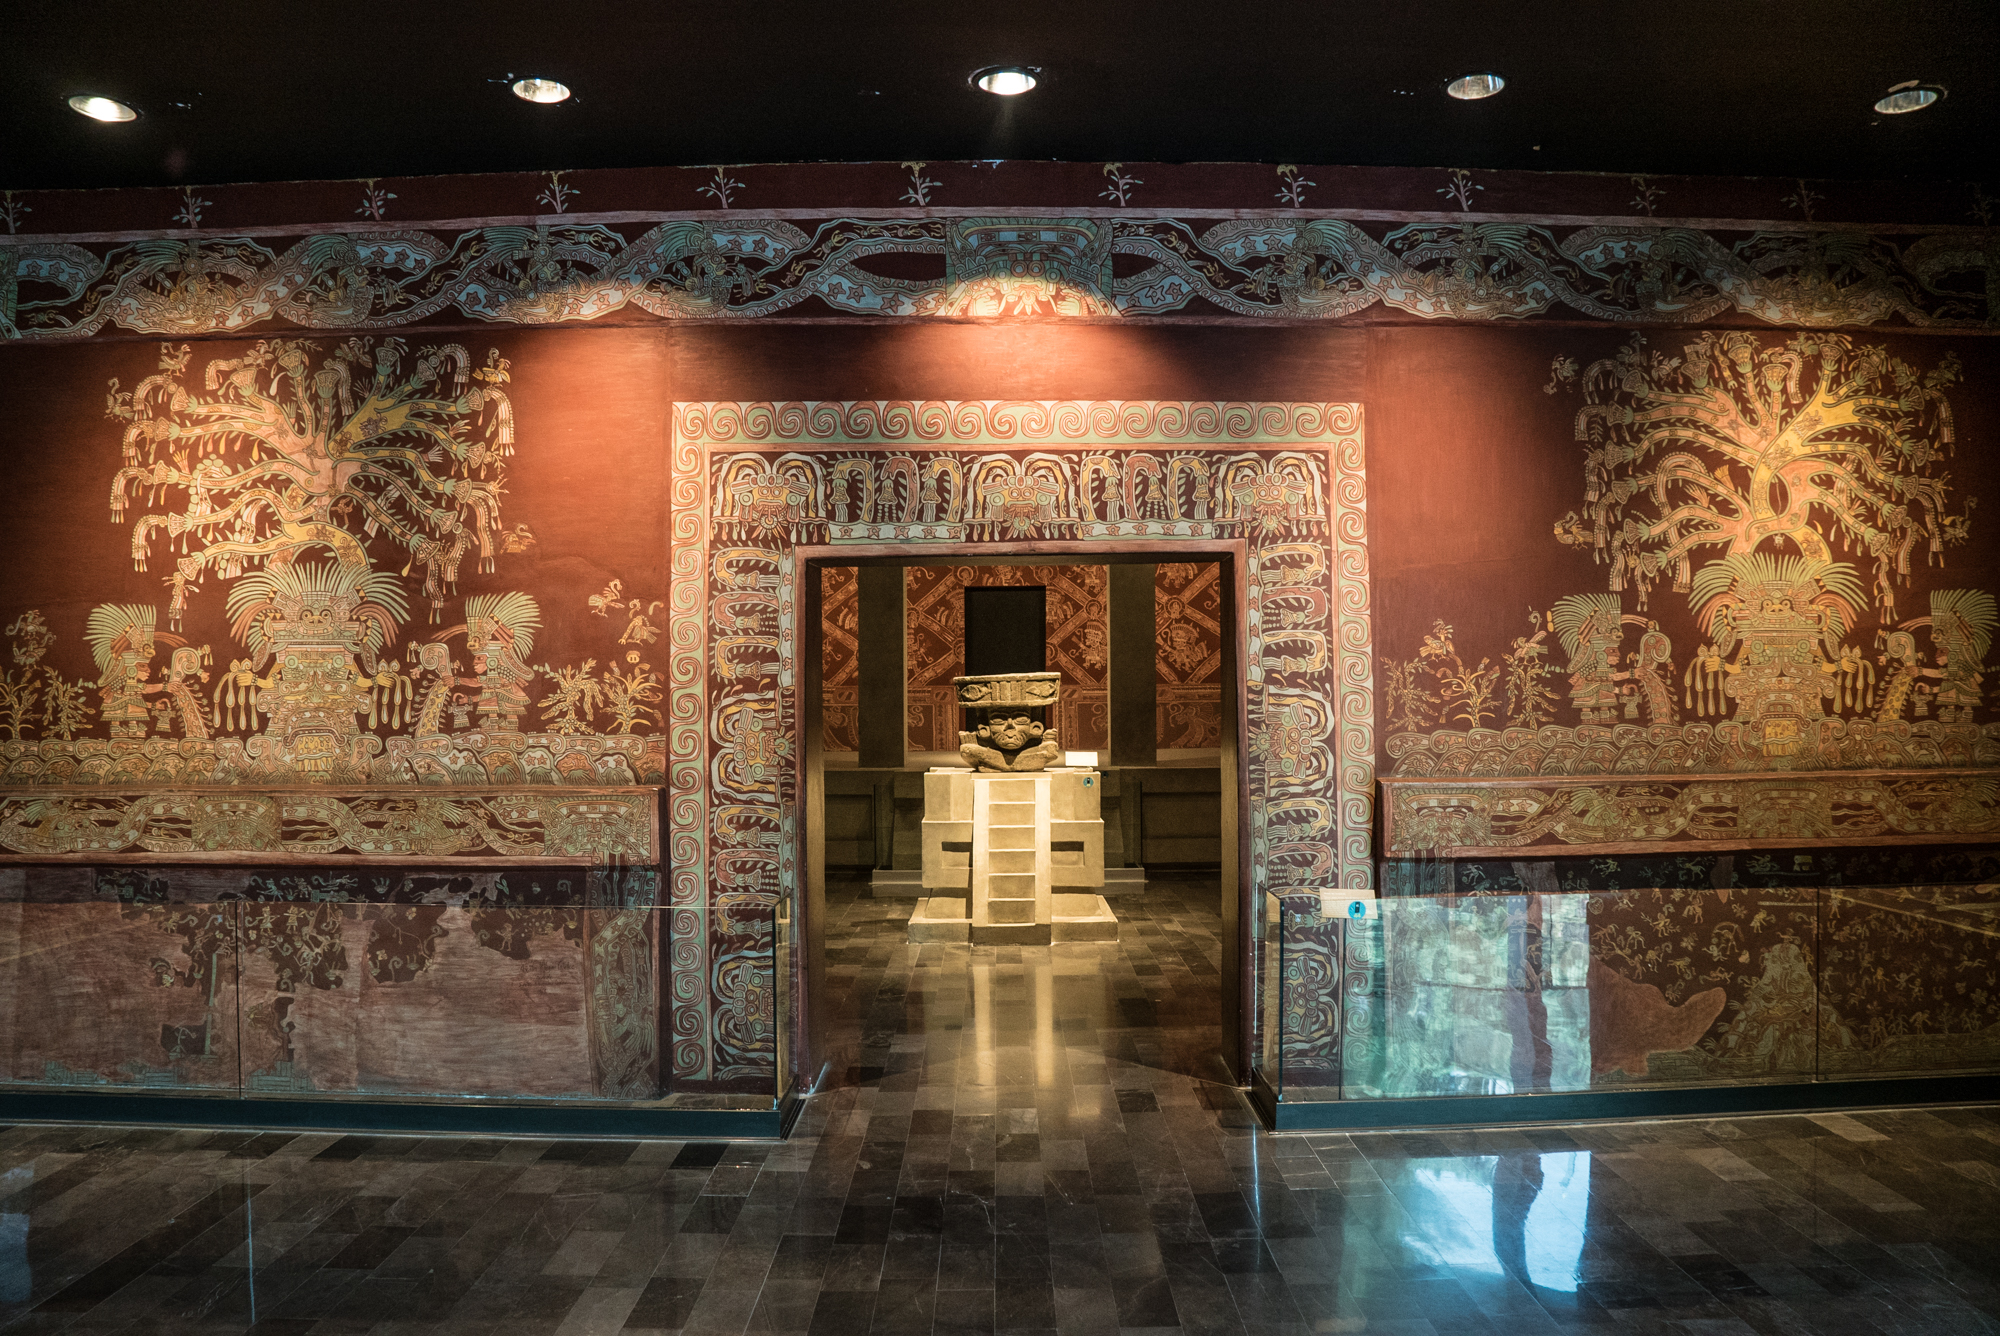 Mexico City Anthropology Museum-12.jpg